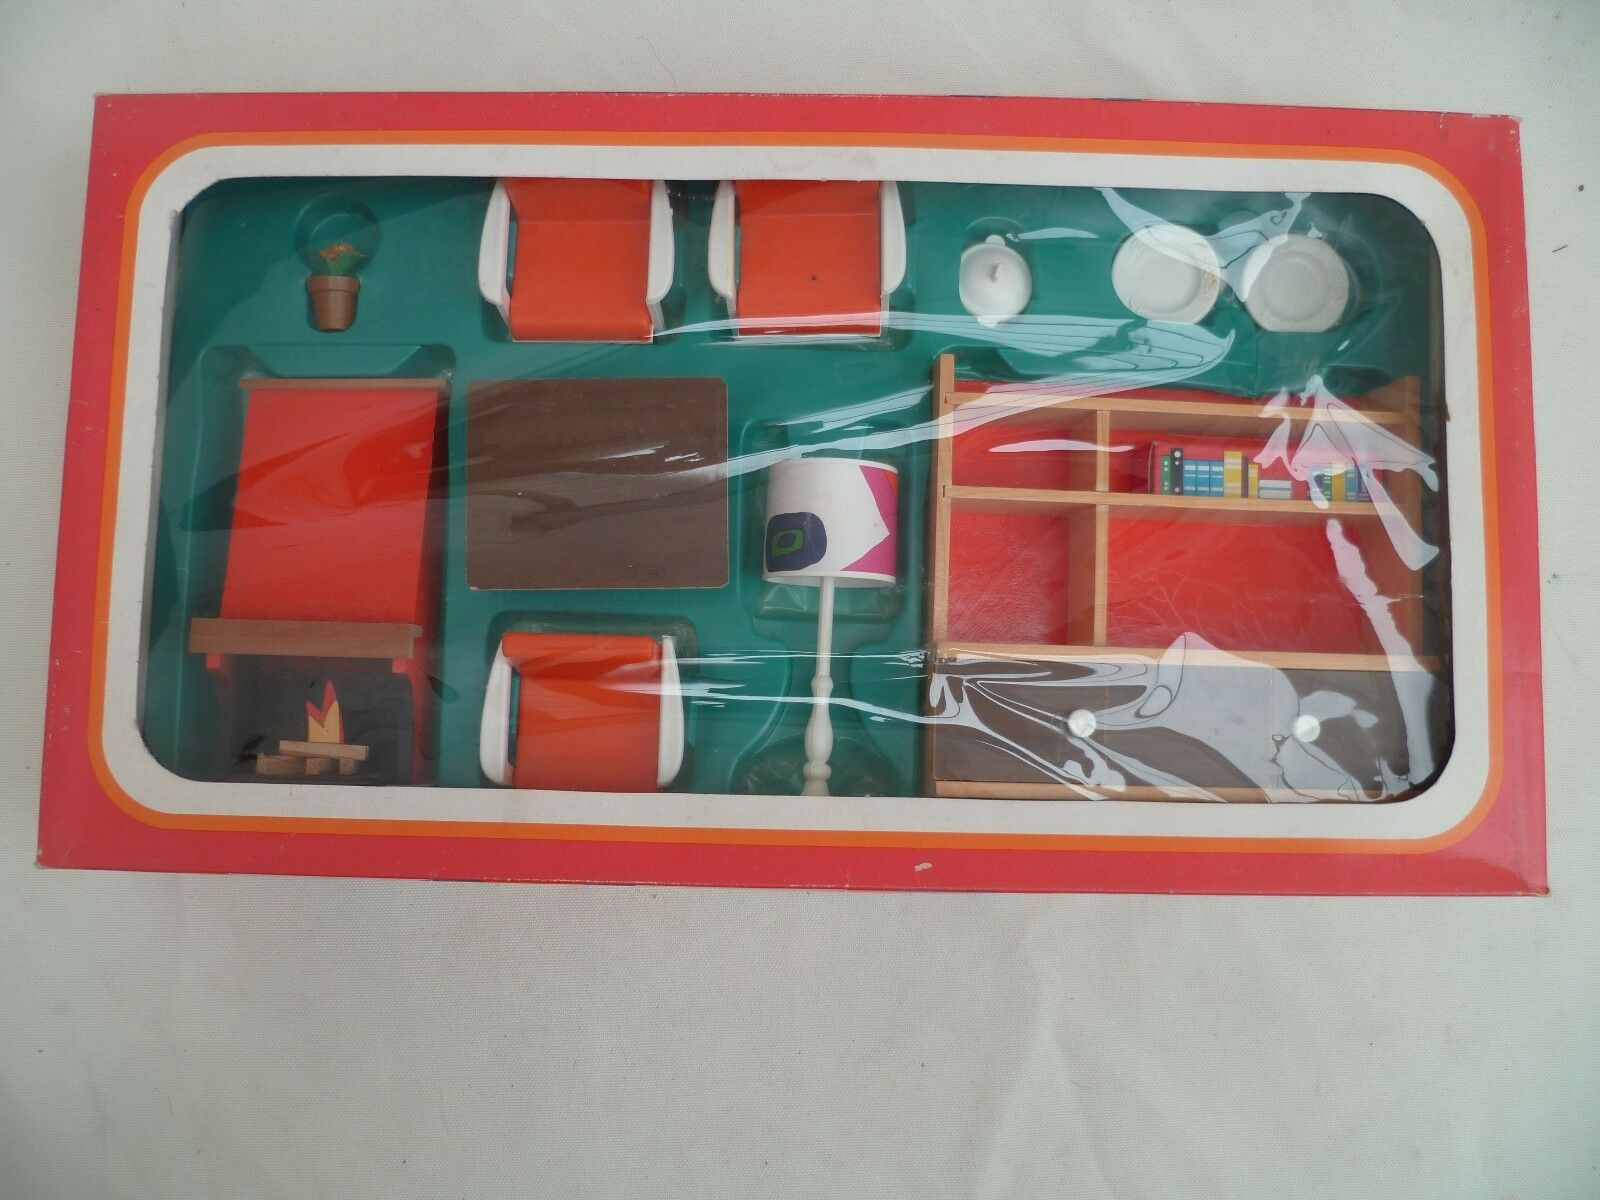 FRADE Mobilier de poupée vintage 70'S Doll's Doll's Doll's house fourniture (Box)complet RARE afbaa1